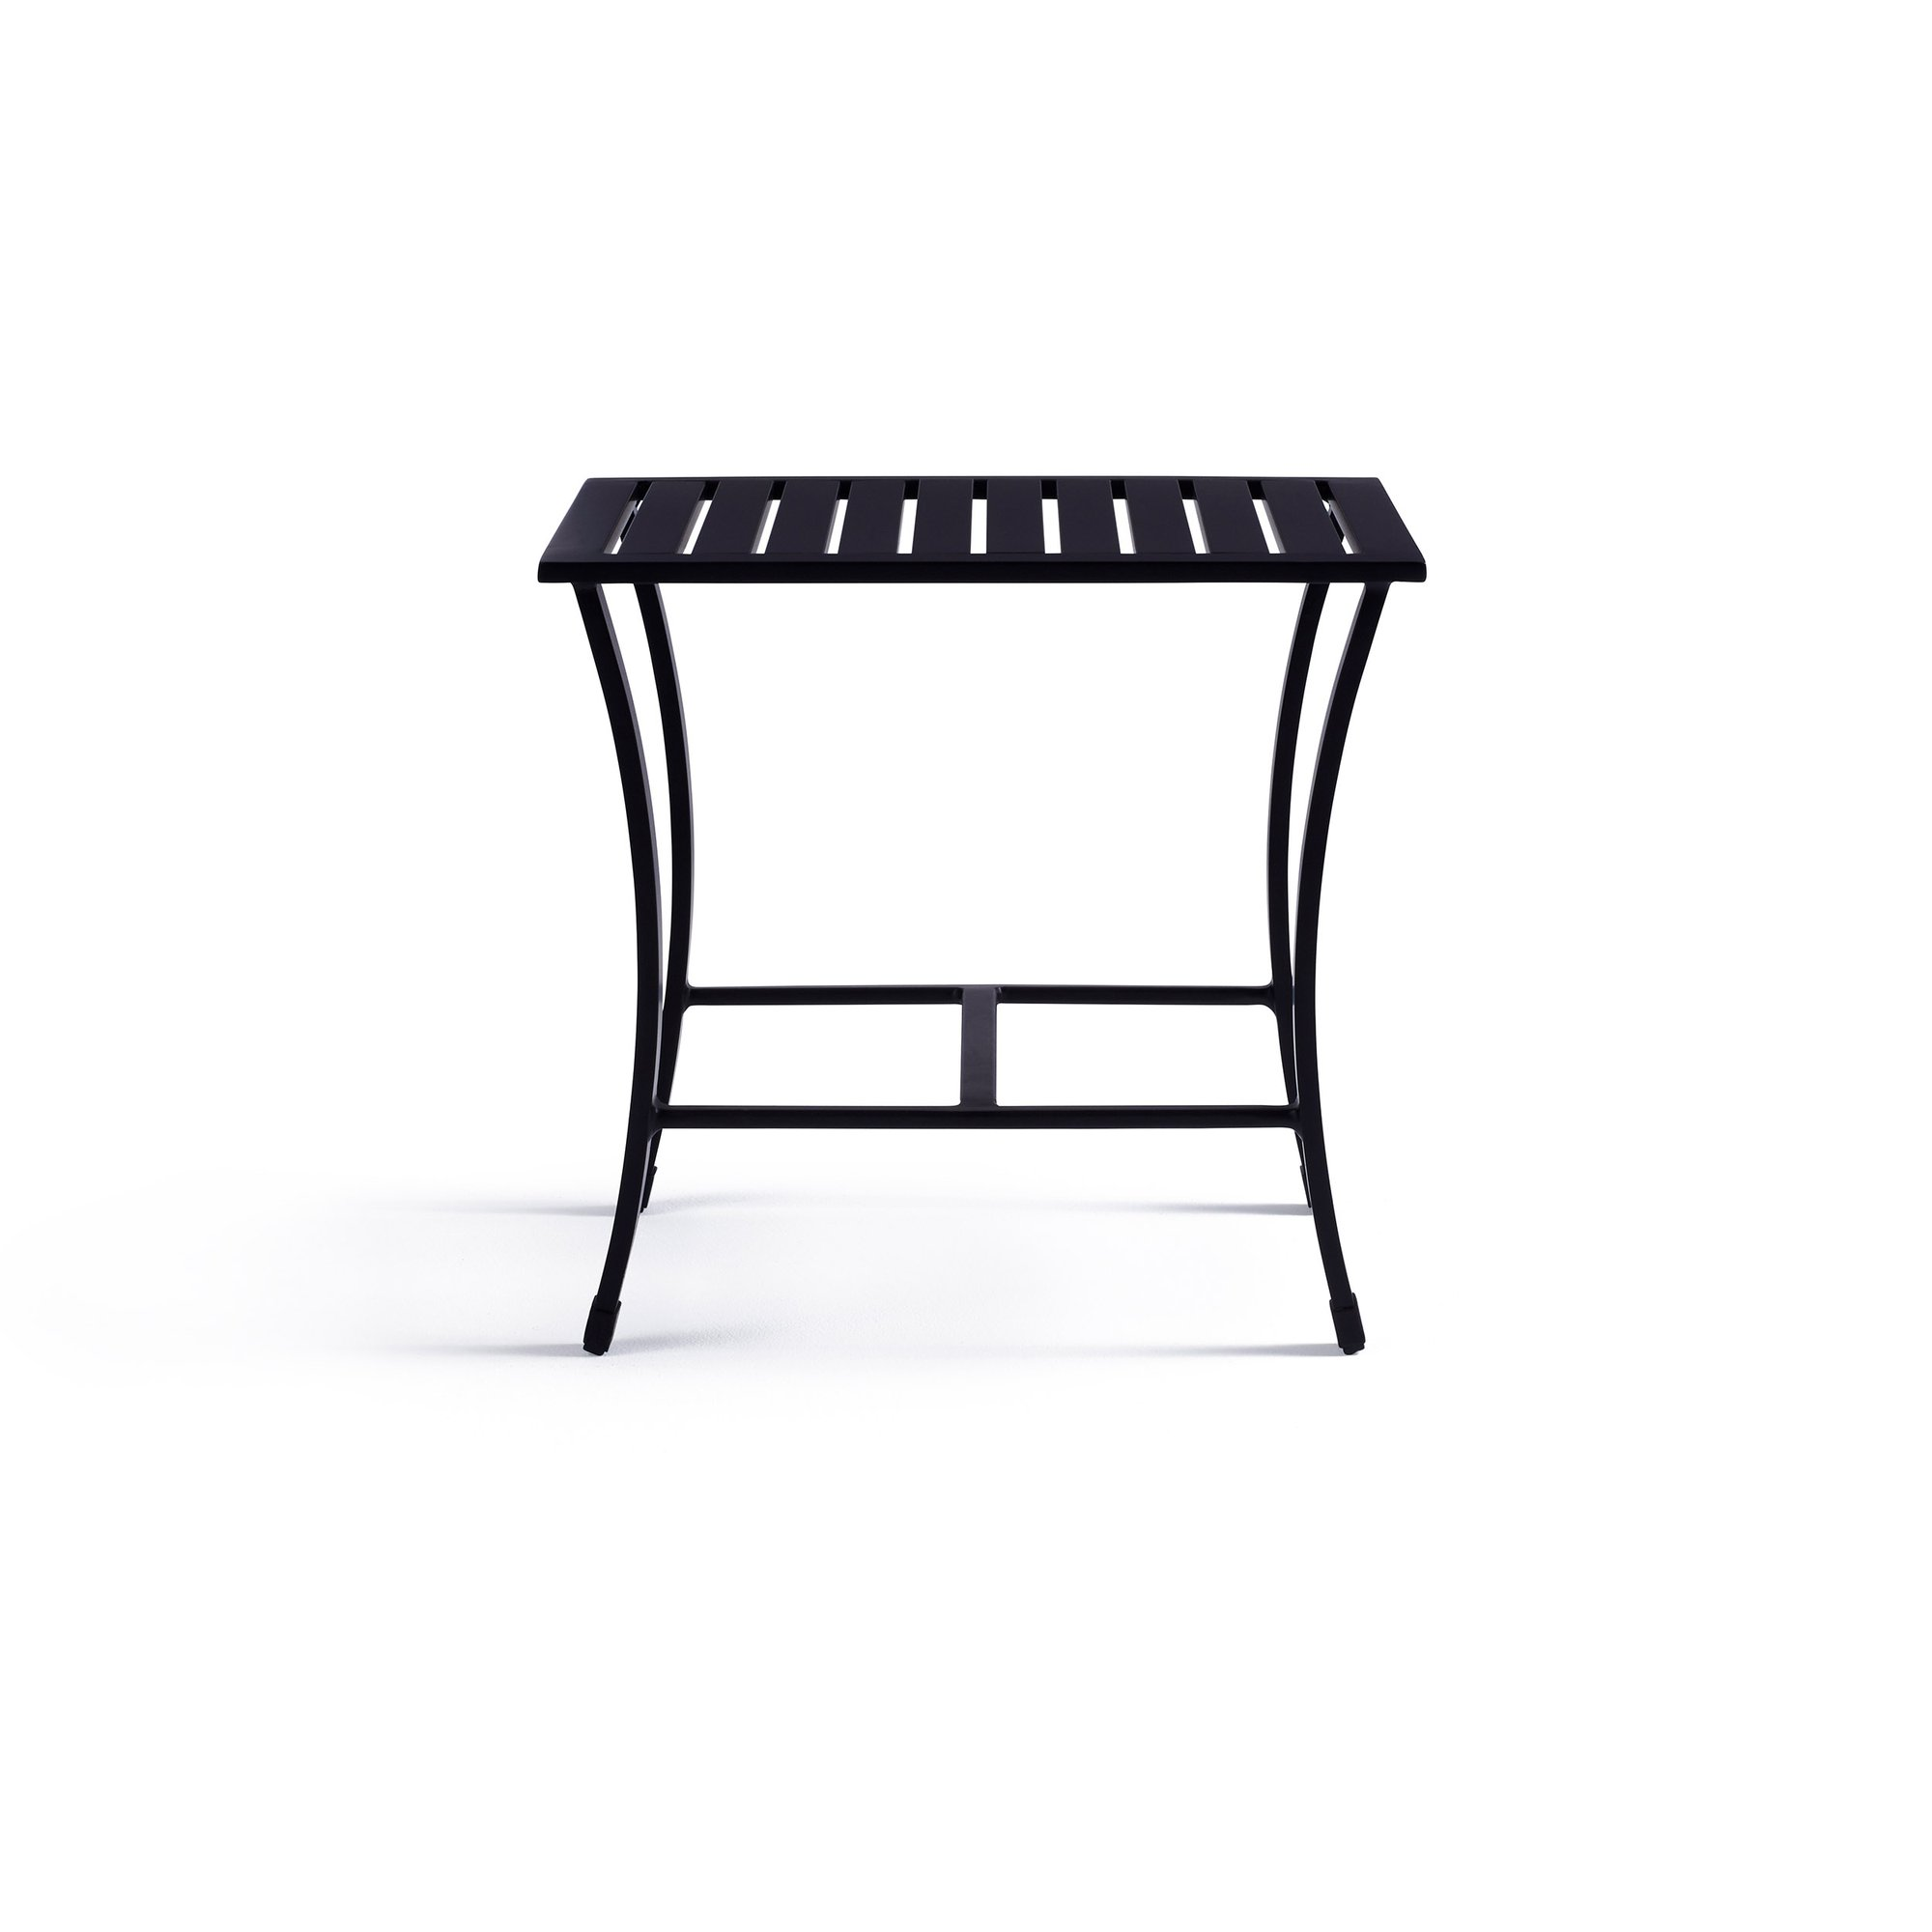 colby outdoor side table yardbird furniture white wood nightstand entryway chair lighting portland antique drop leaf value small rattan cast metal accent nate berkus bar height